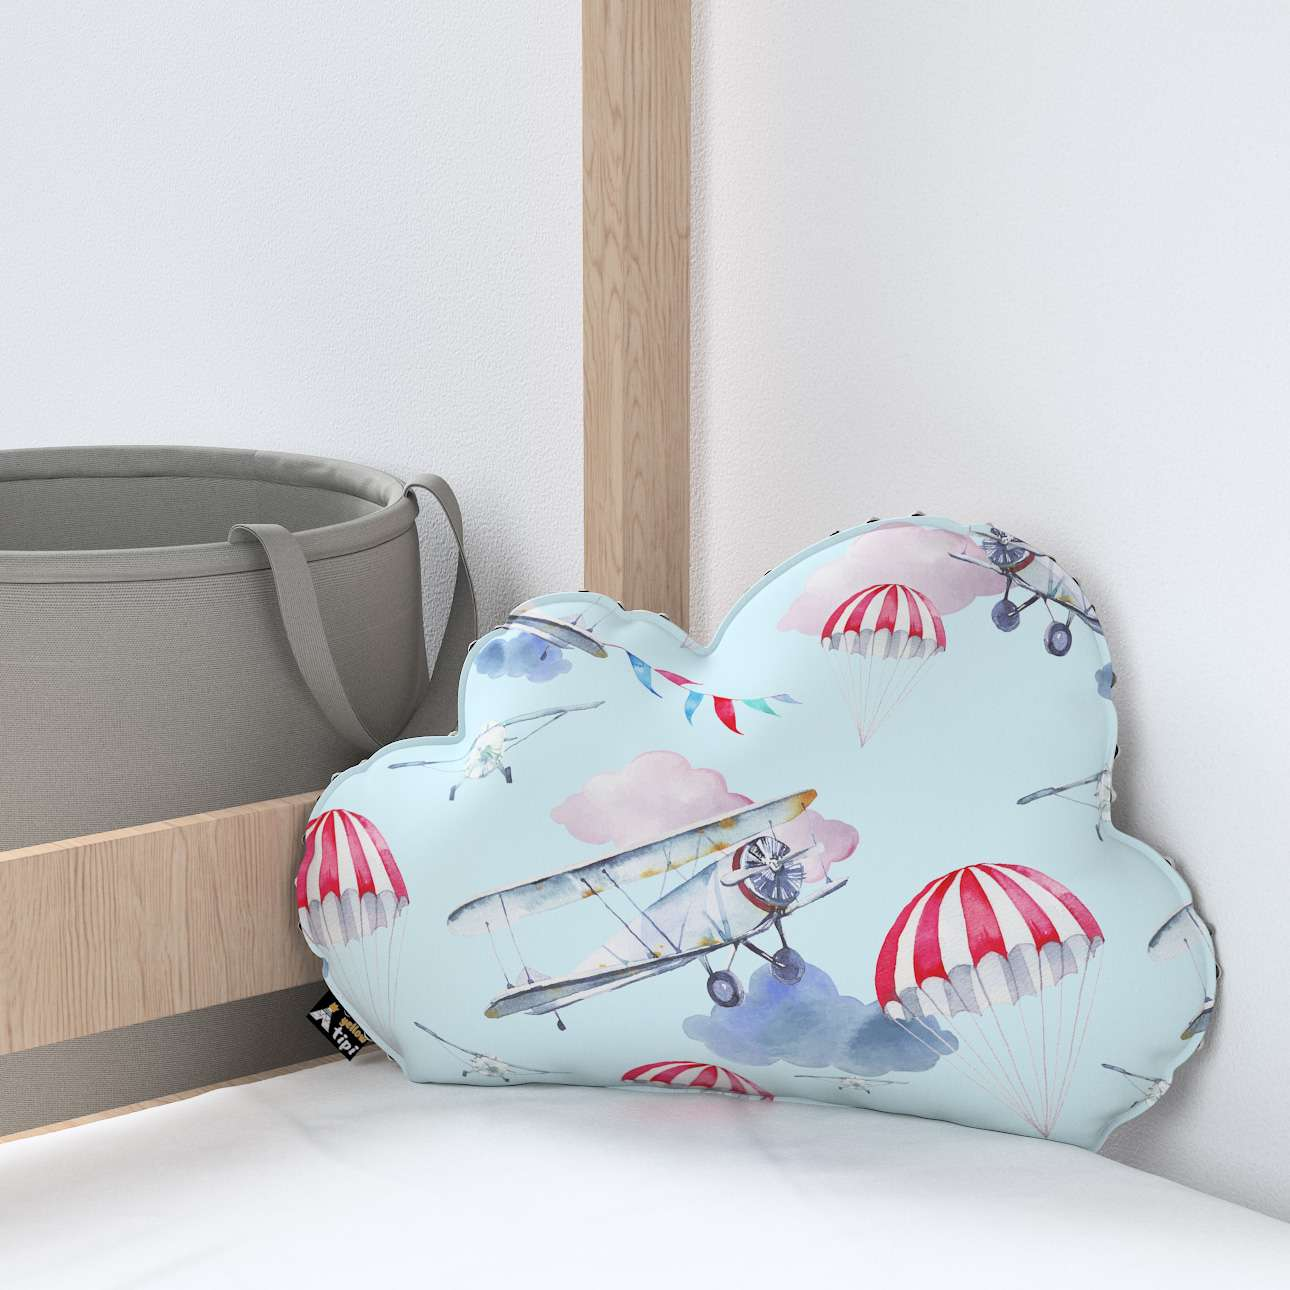 Soft Cloud pillow with minky in collection Magic Collection, fabric: 500-10